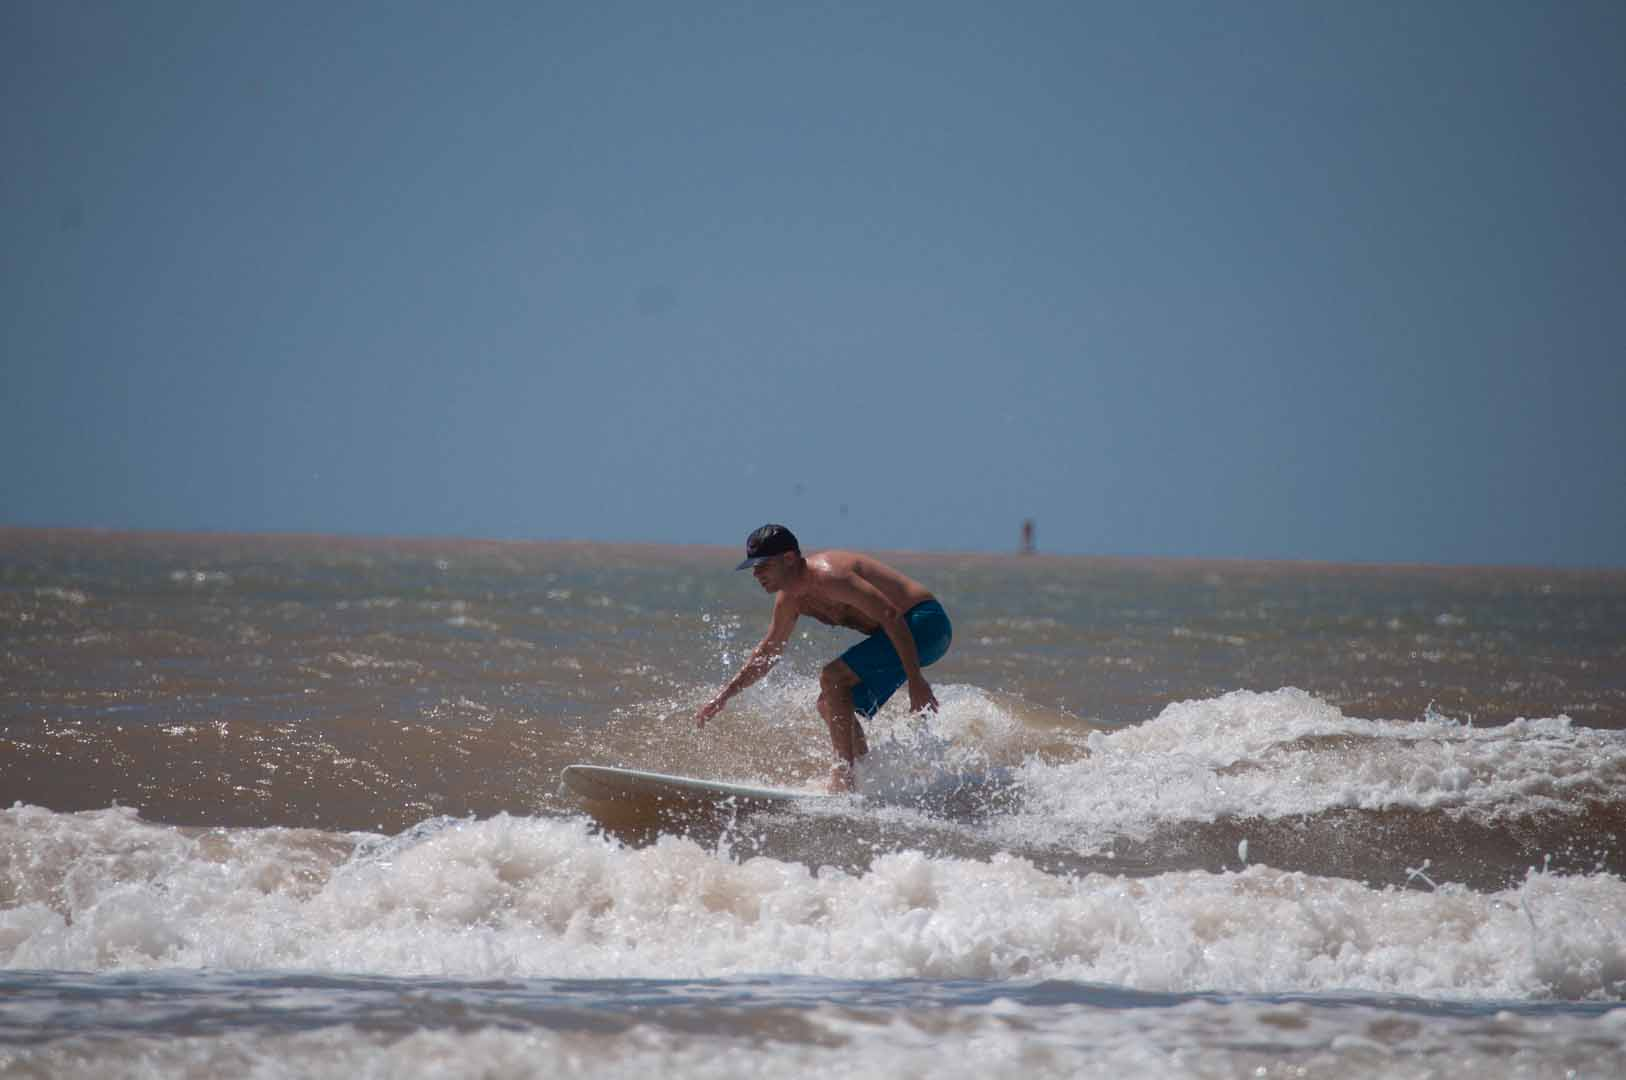 SurfsideLateJune_20150627_018